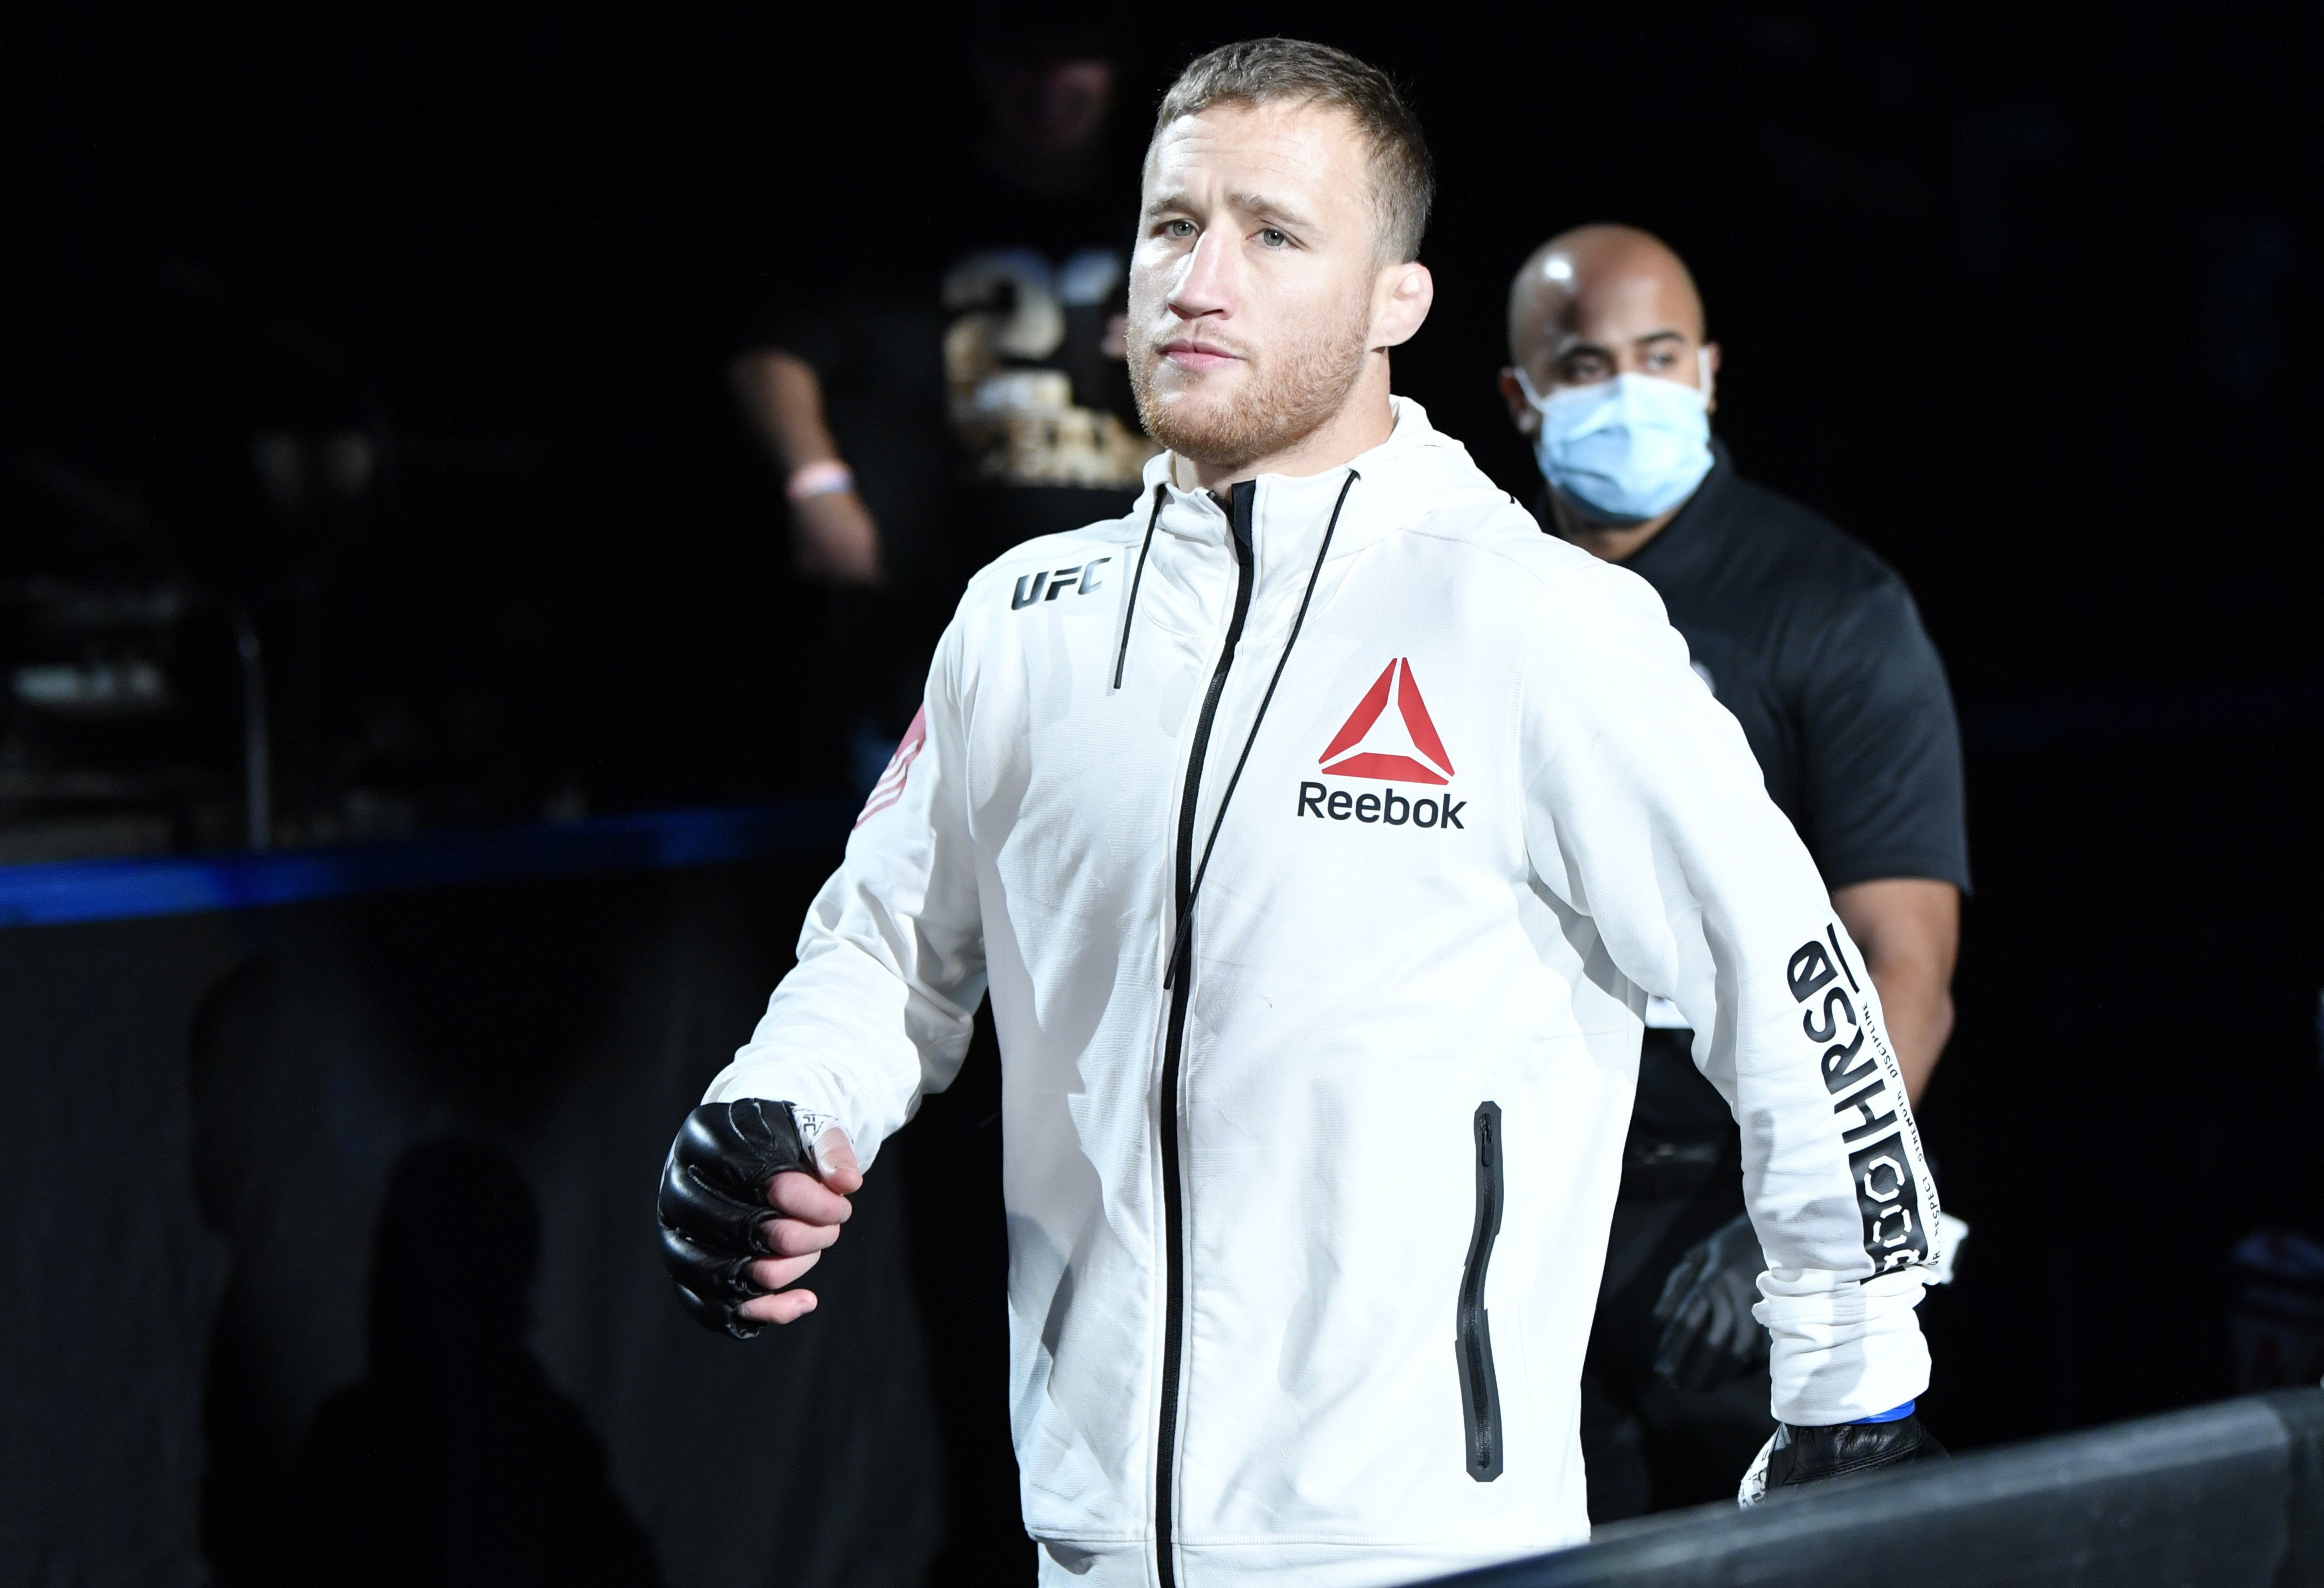 Justin Gaethje walks out before a UFC fight